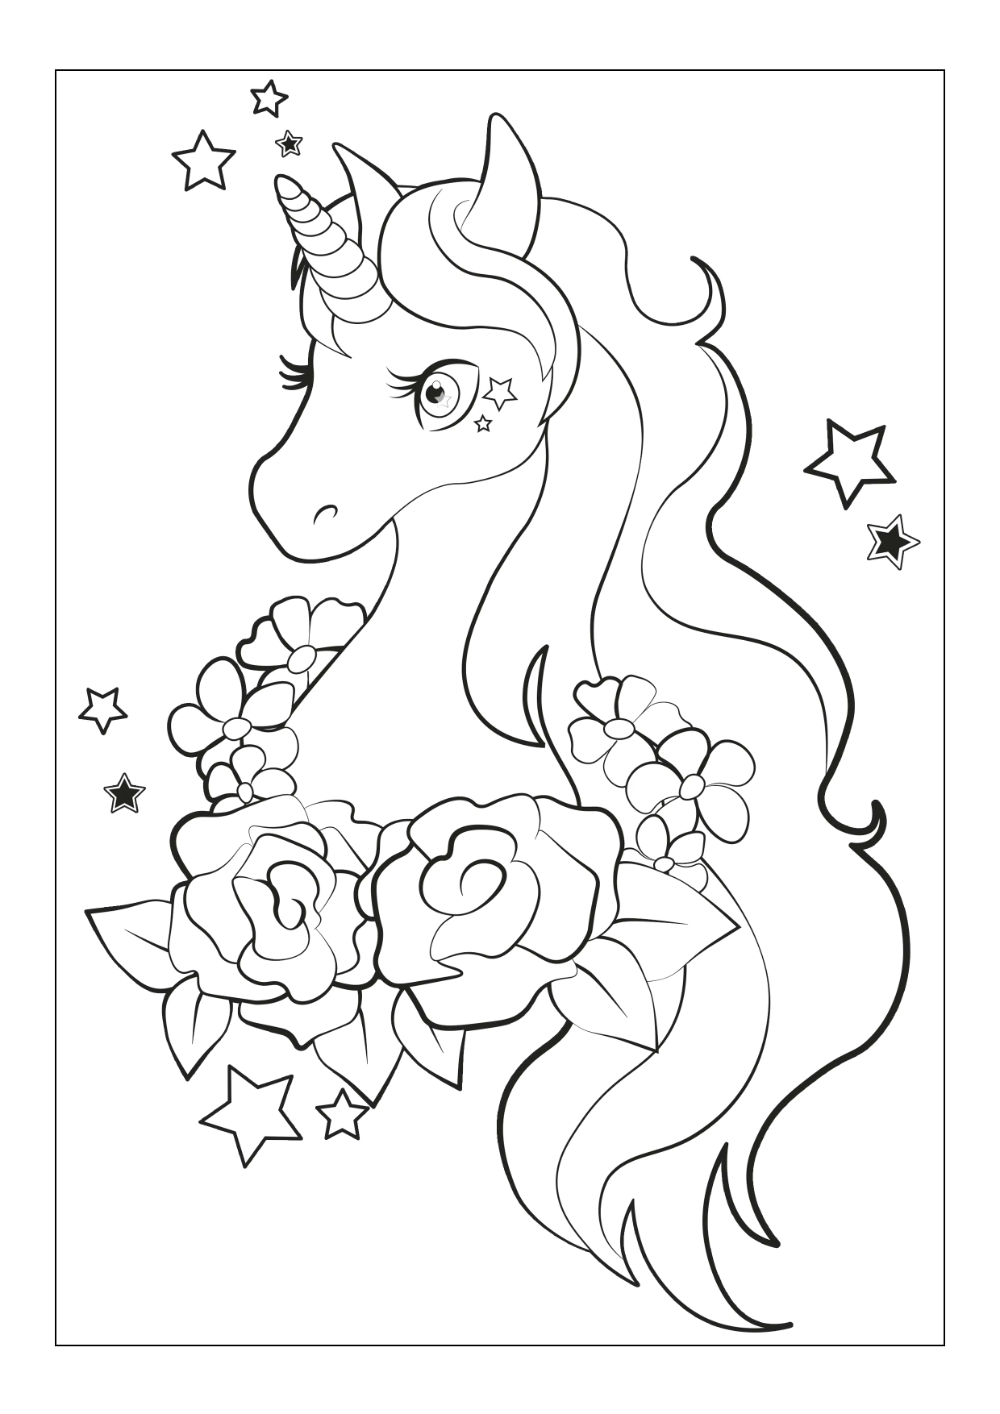 Coloring Sheets For Girls Google Search Coloring Pages For Girls Unicorn Coloring Pages Christmas Coloring Pages